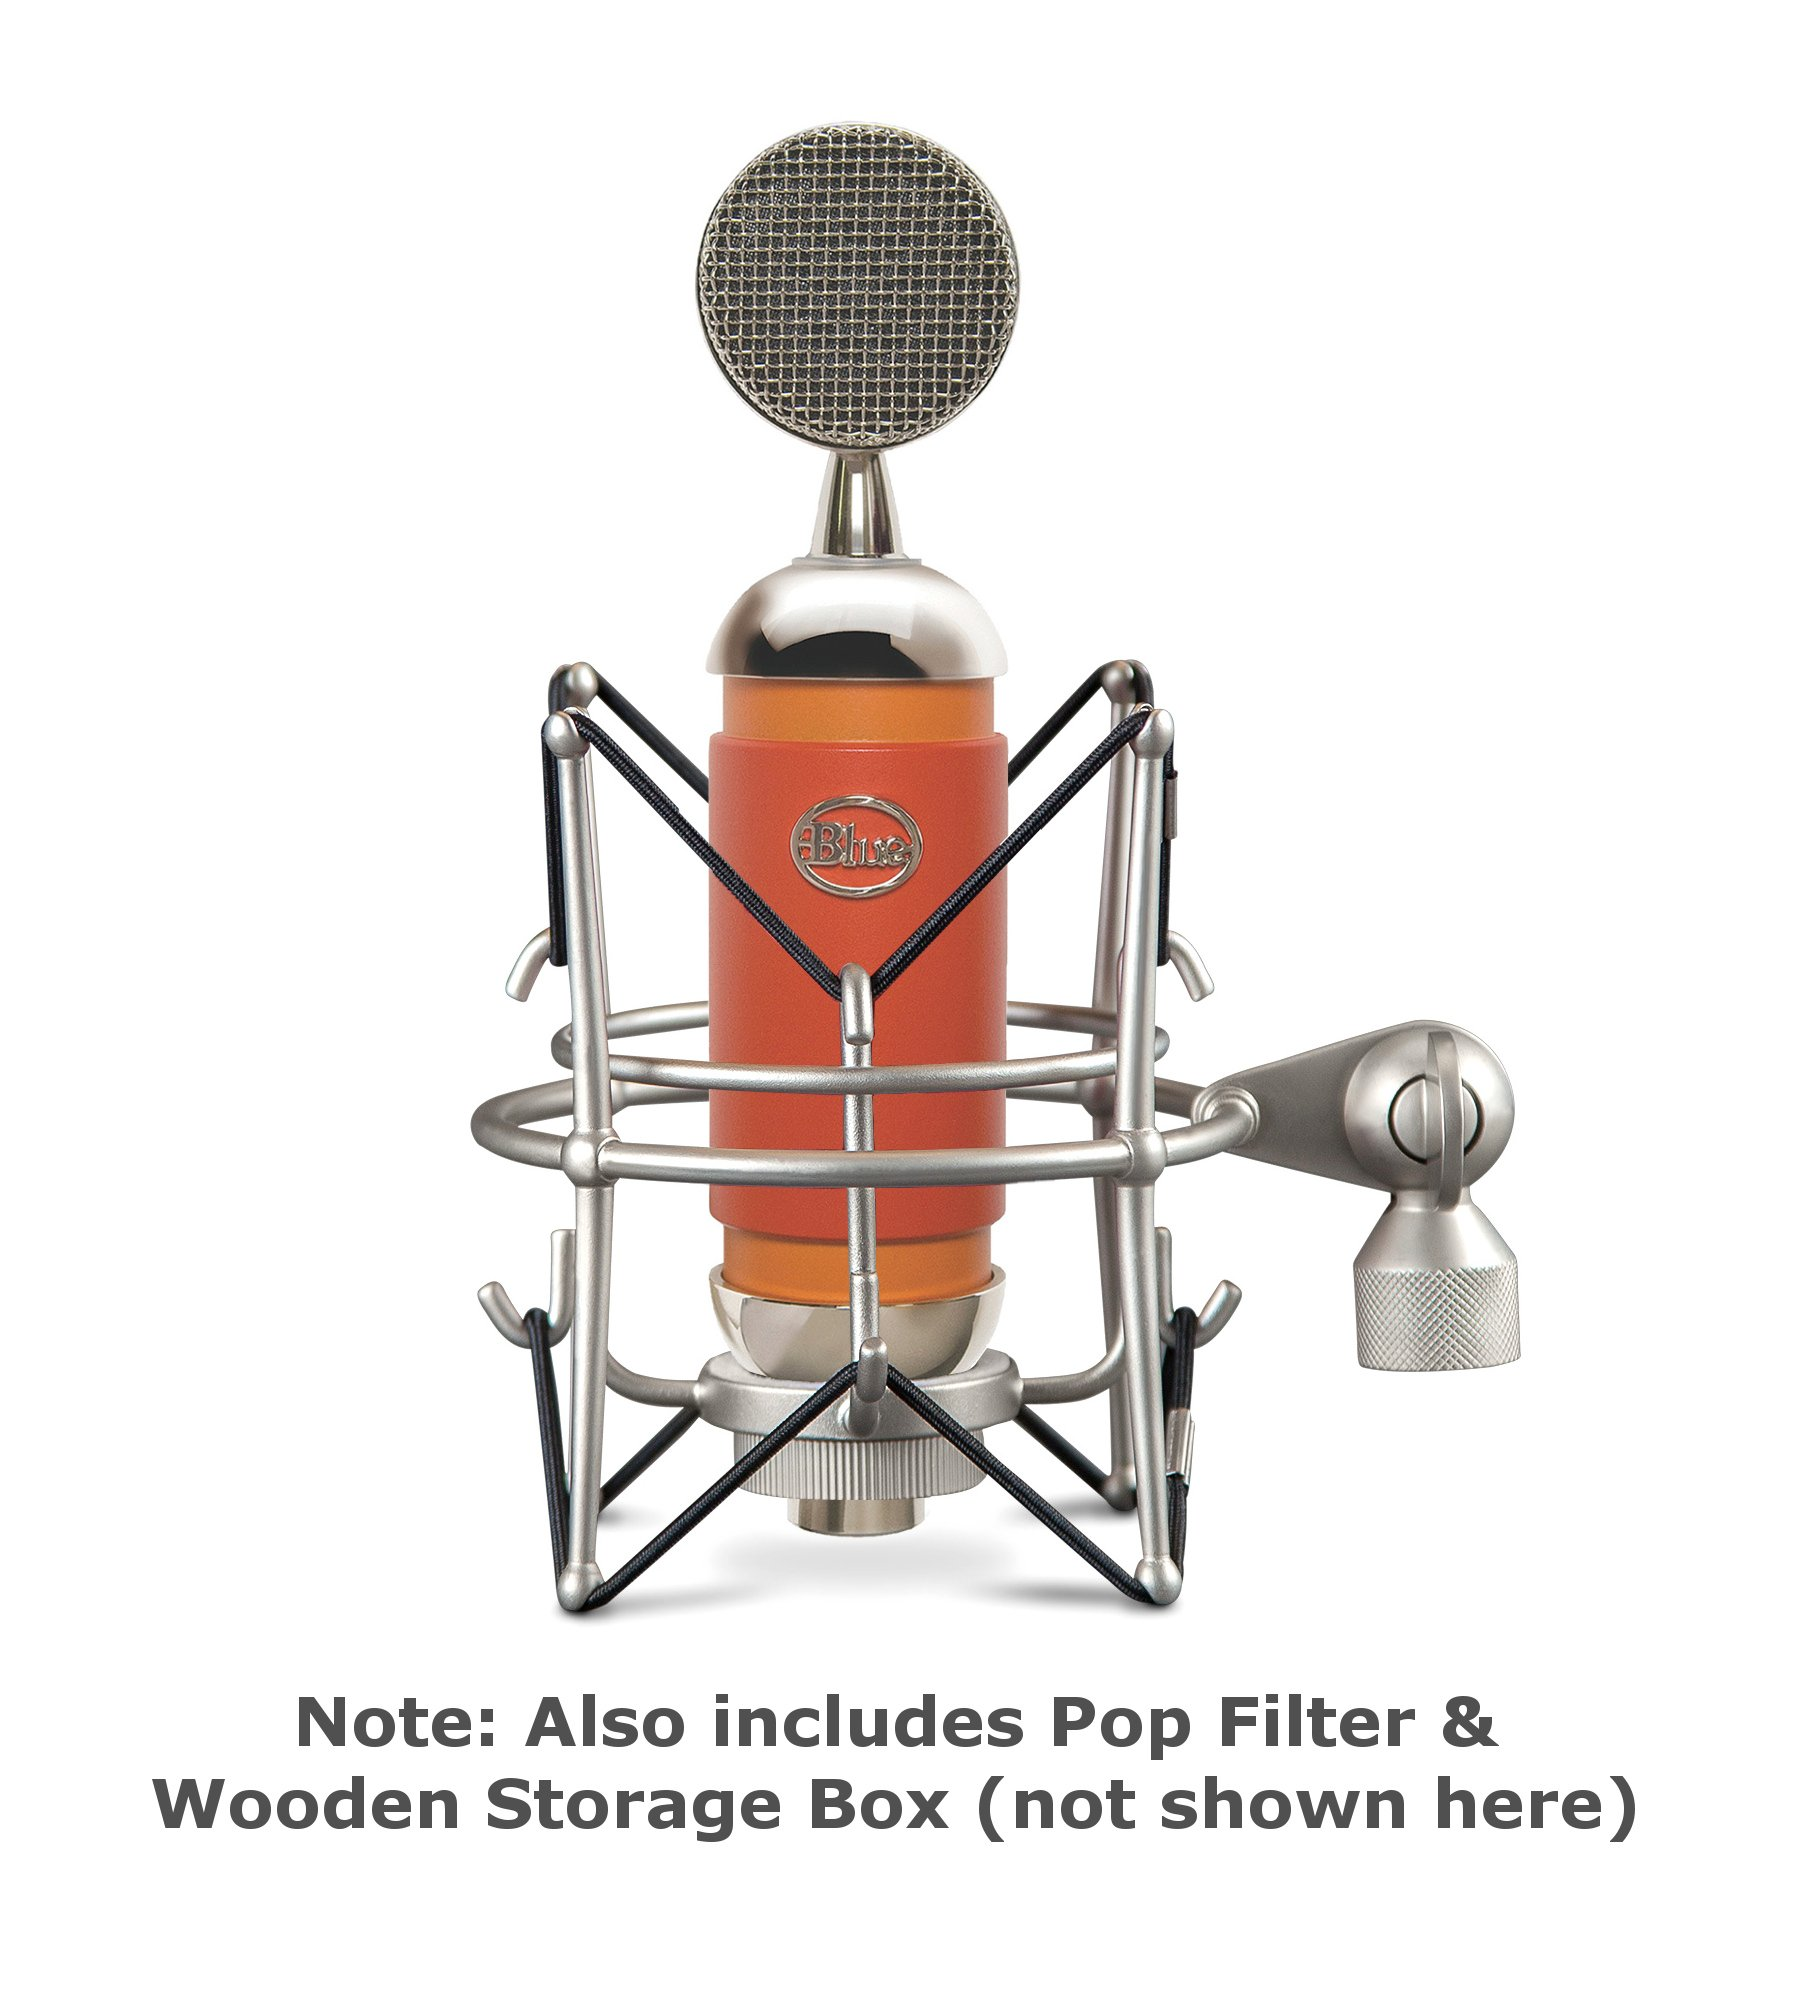 Cardioid Condenser Microphone with Focus Control